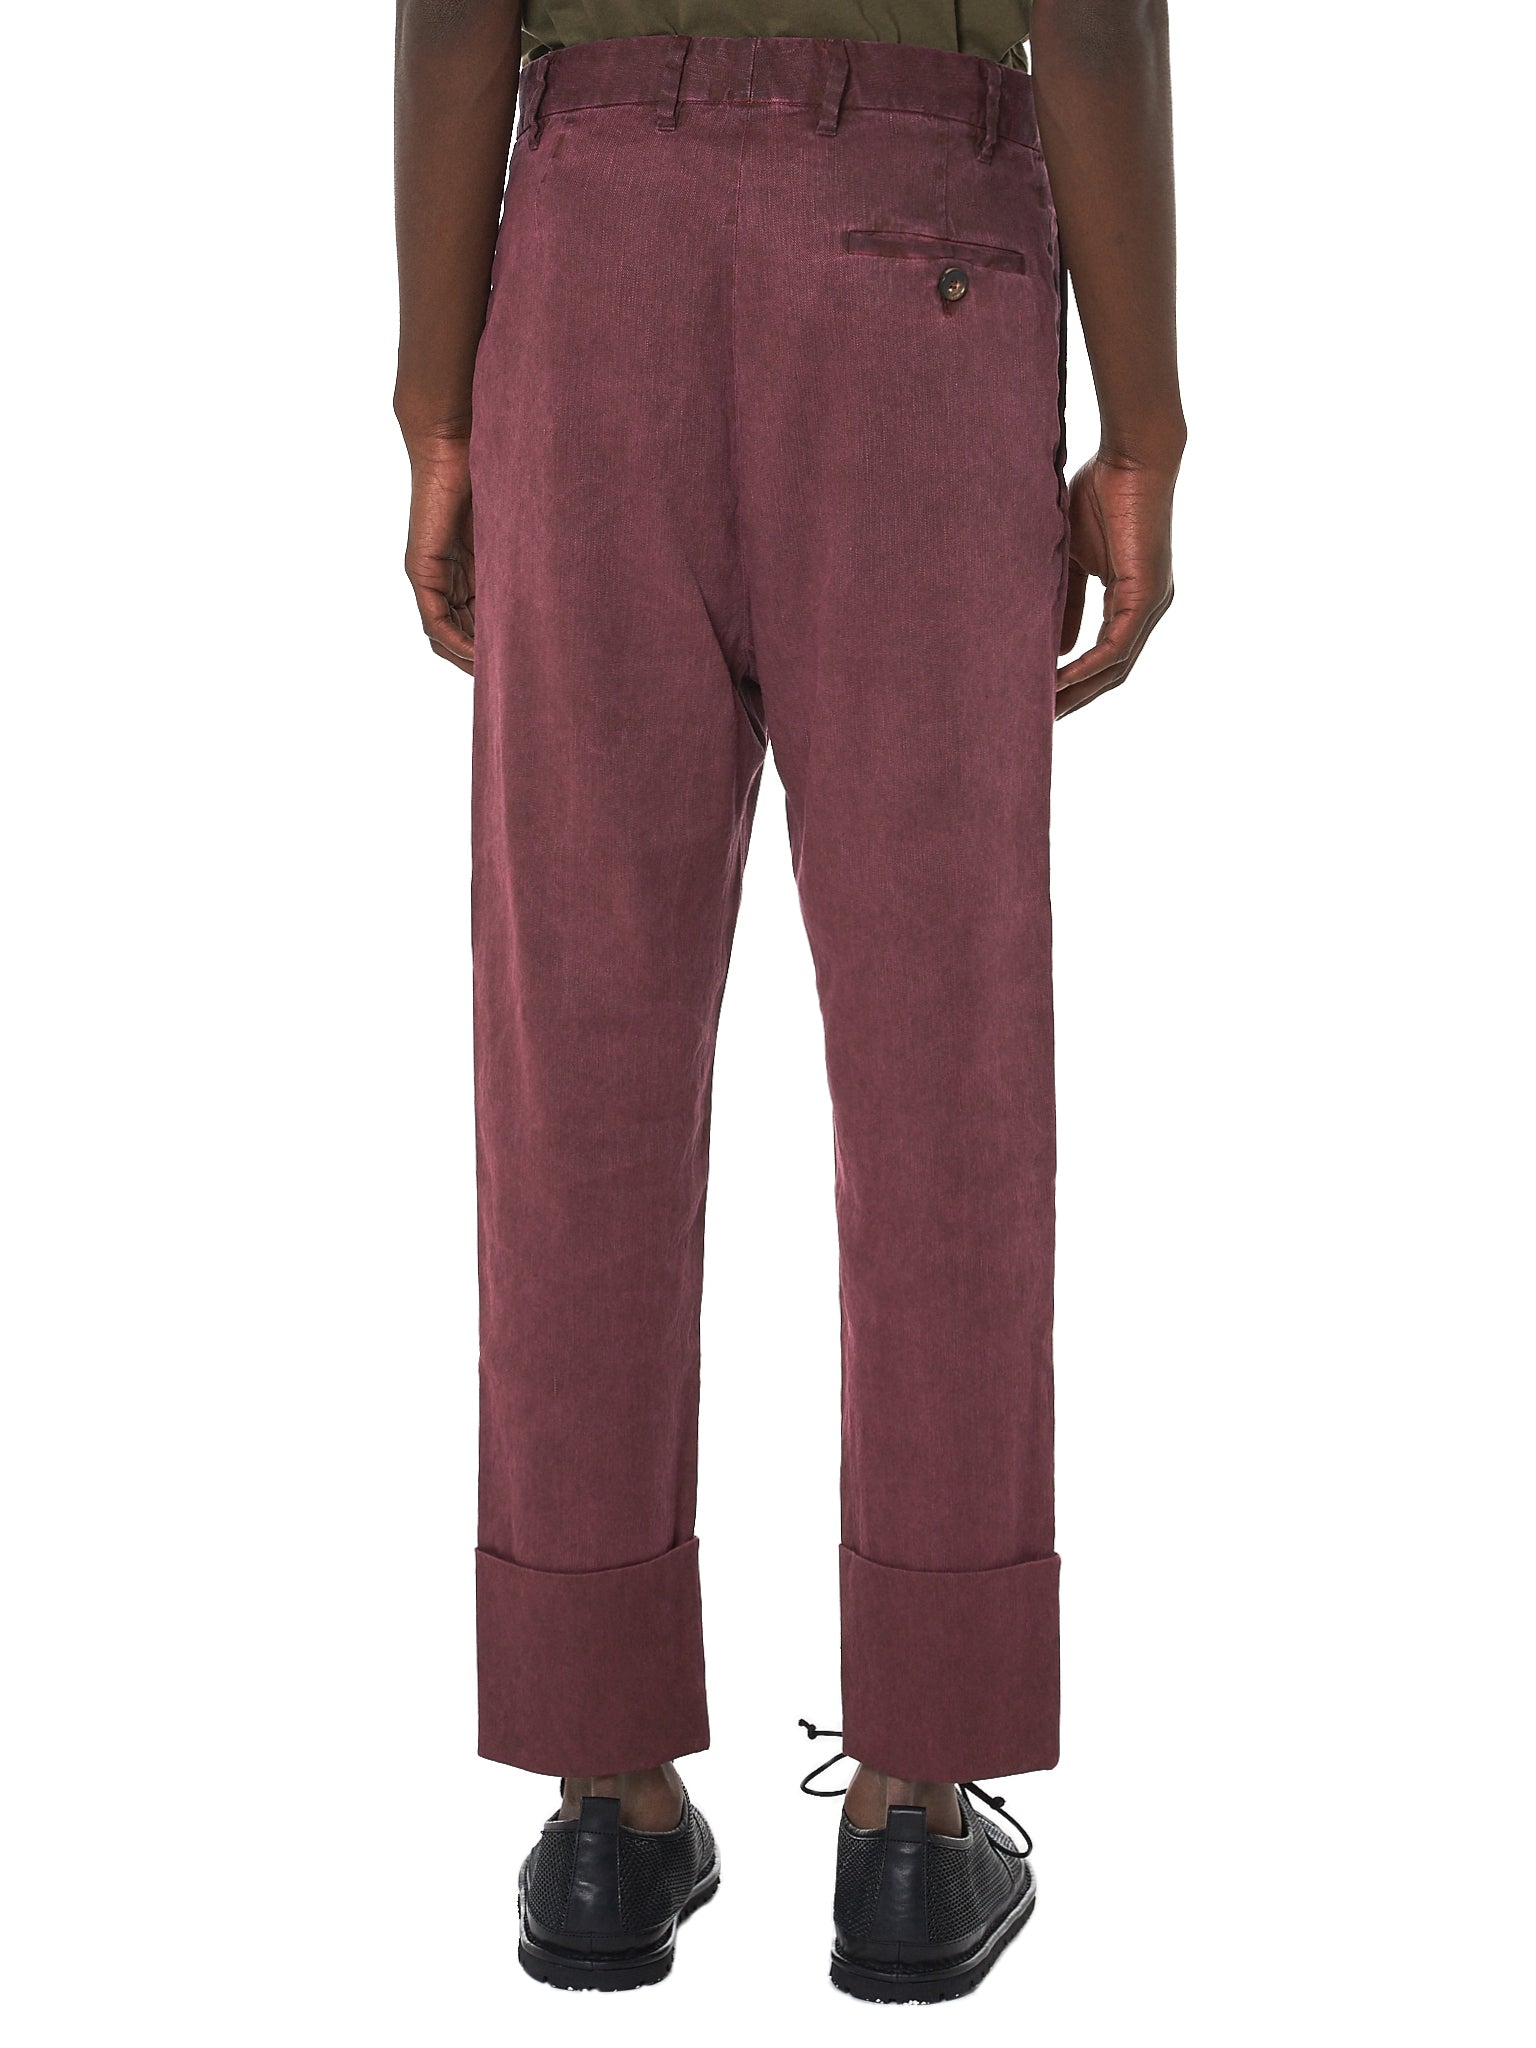 Vivienne Westwood Linen Trousers - Hlorenzo Back